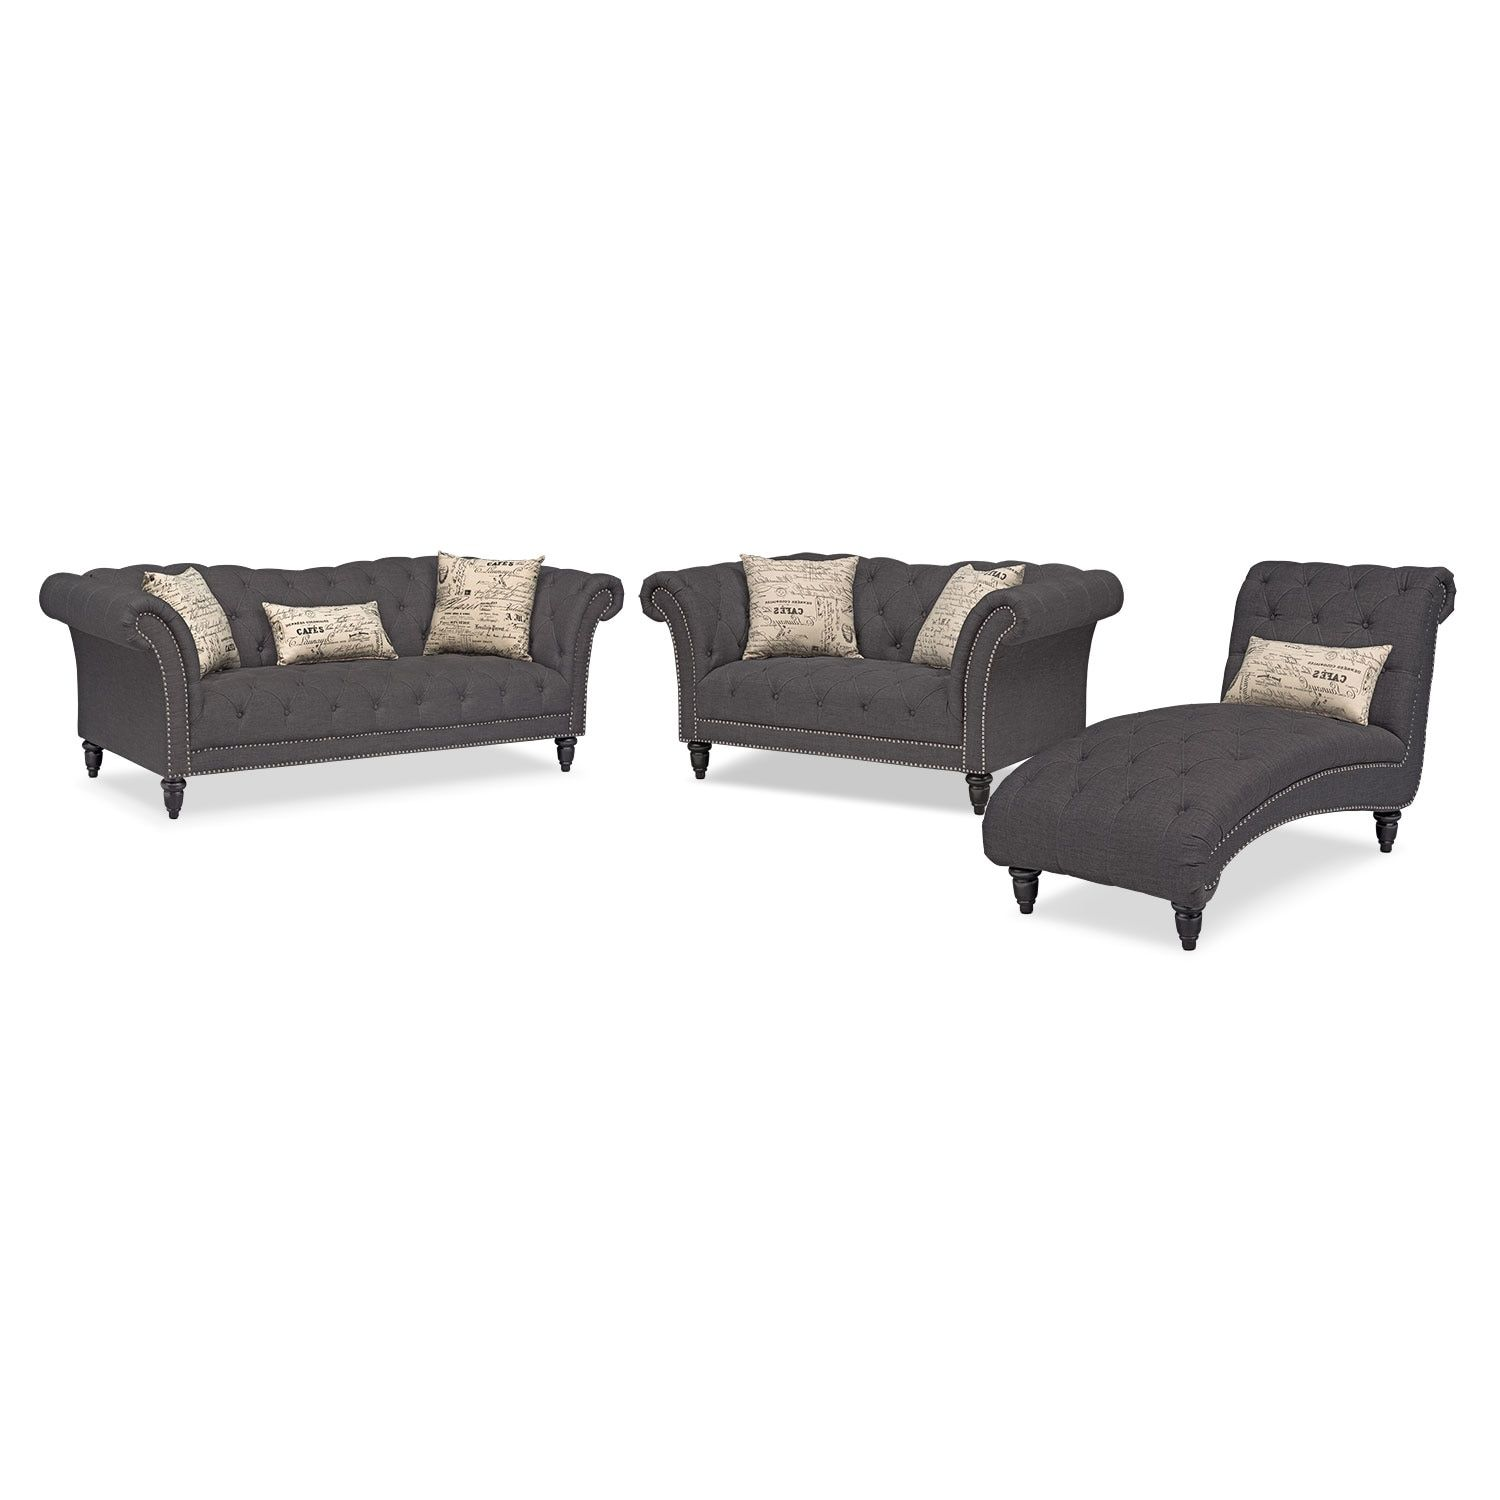 Marisol Sofa, Loveseat and Chaise Set - Charcoal | Living room ...